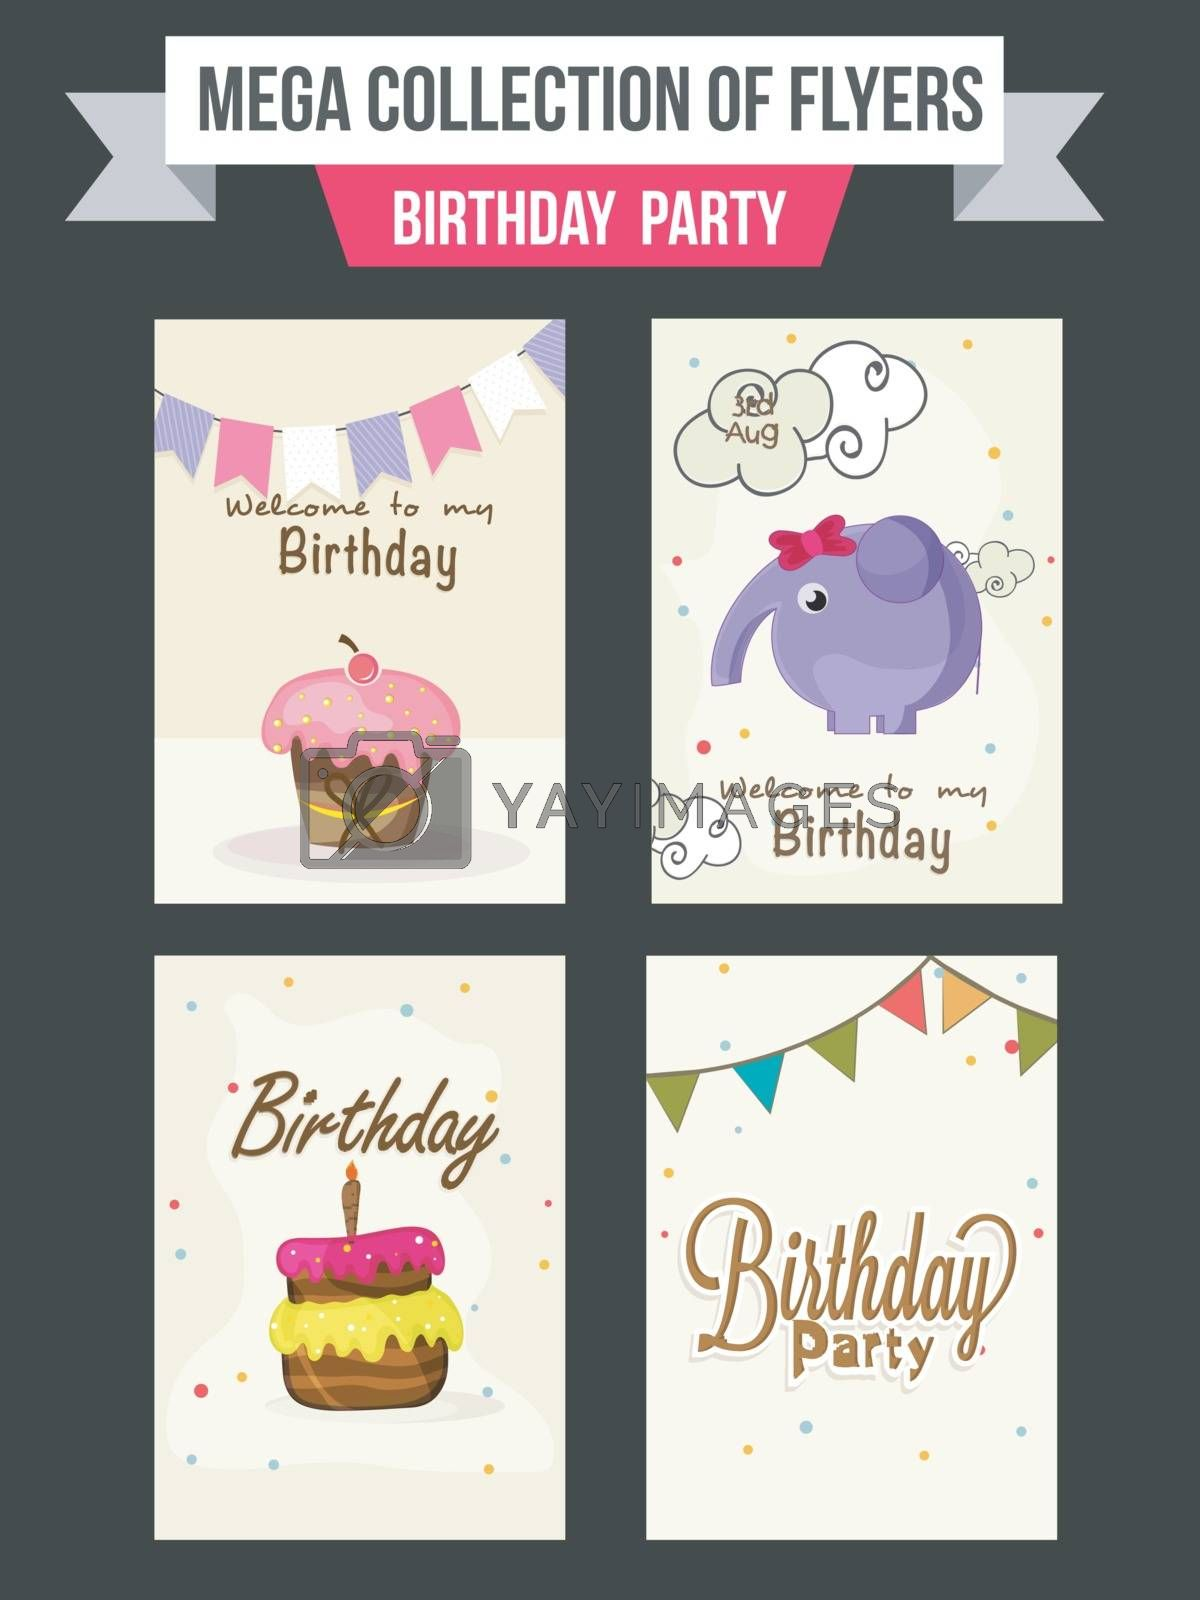 Collection of Birthday Party flyers with illustration of sweet cupcakes and cute elephant.